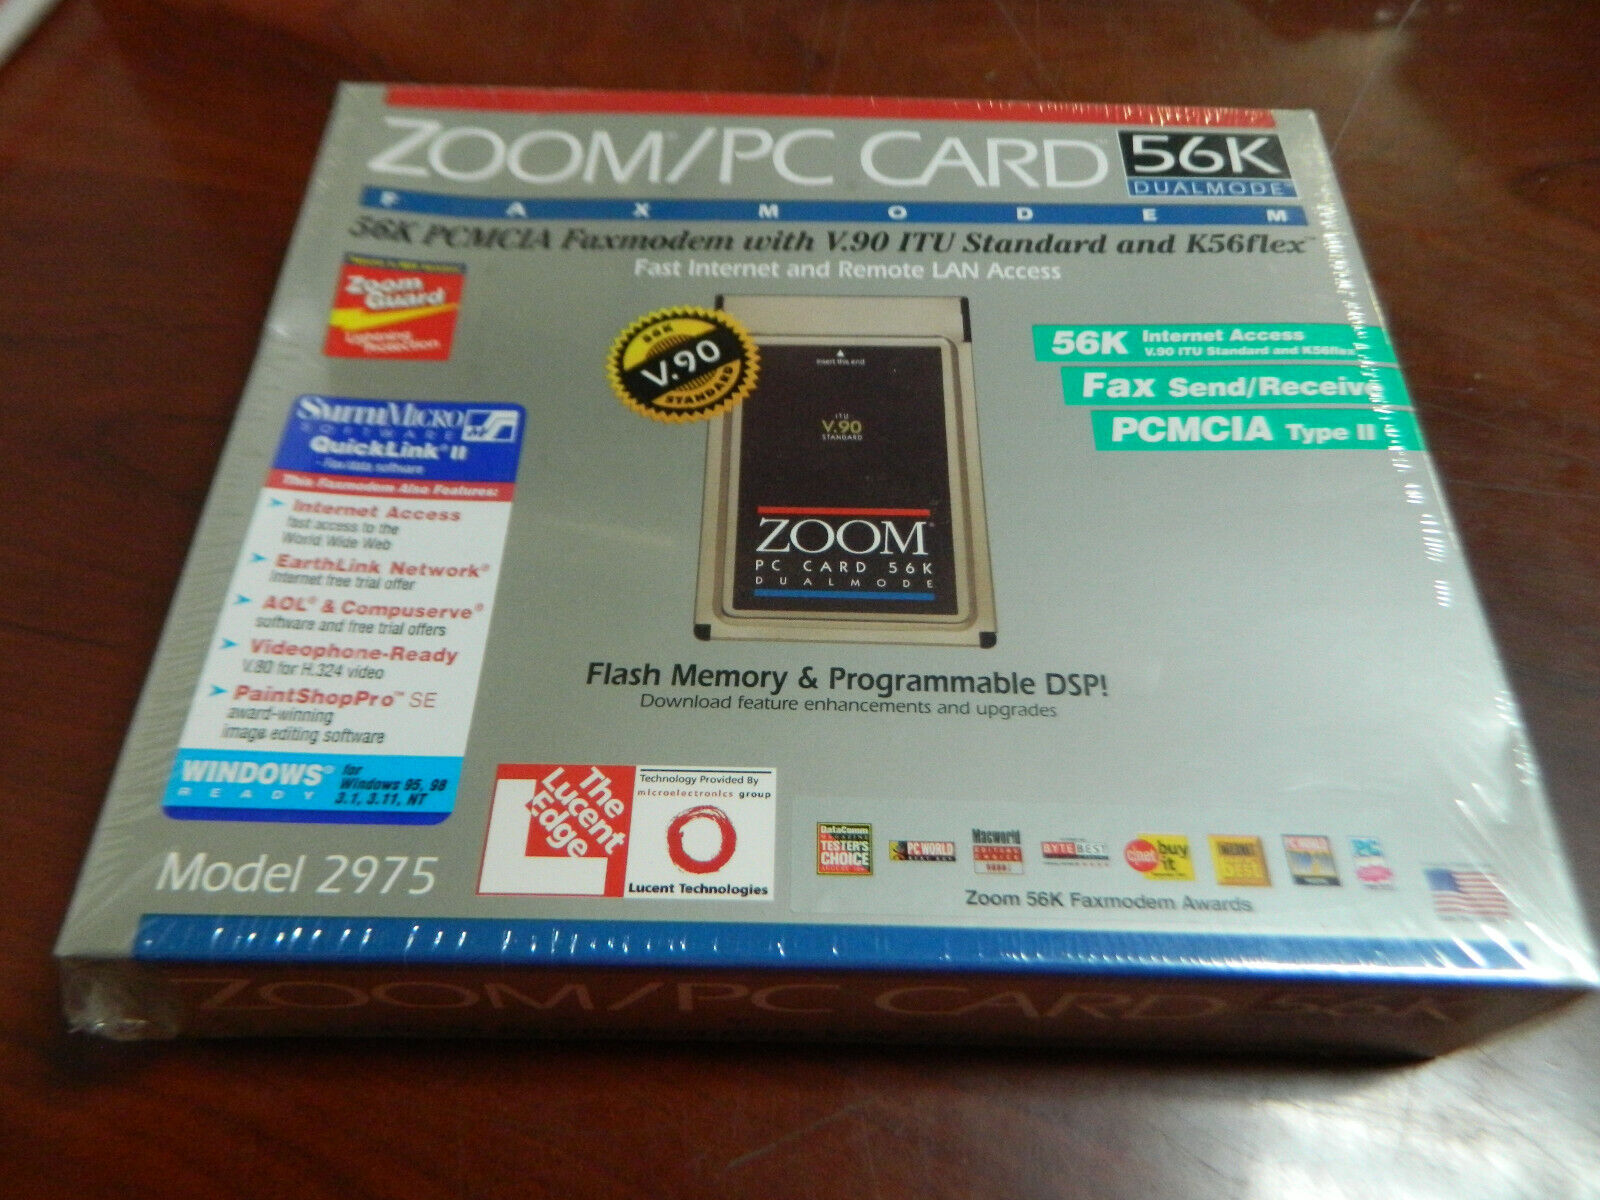 как выглядит Zoom/PC Card-New 56K DualMode PC/MCIA Faxmodeum with V.90 ITU Standard and K56Fl фото